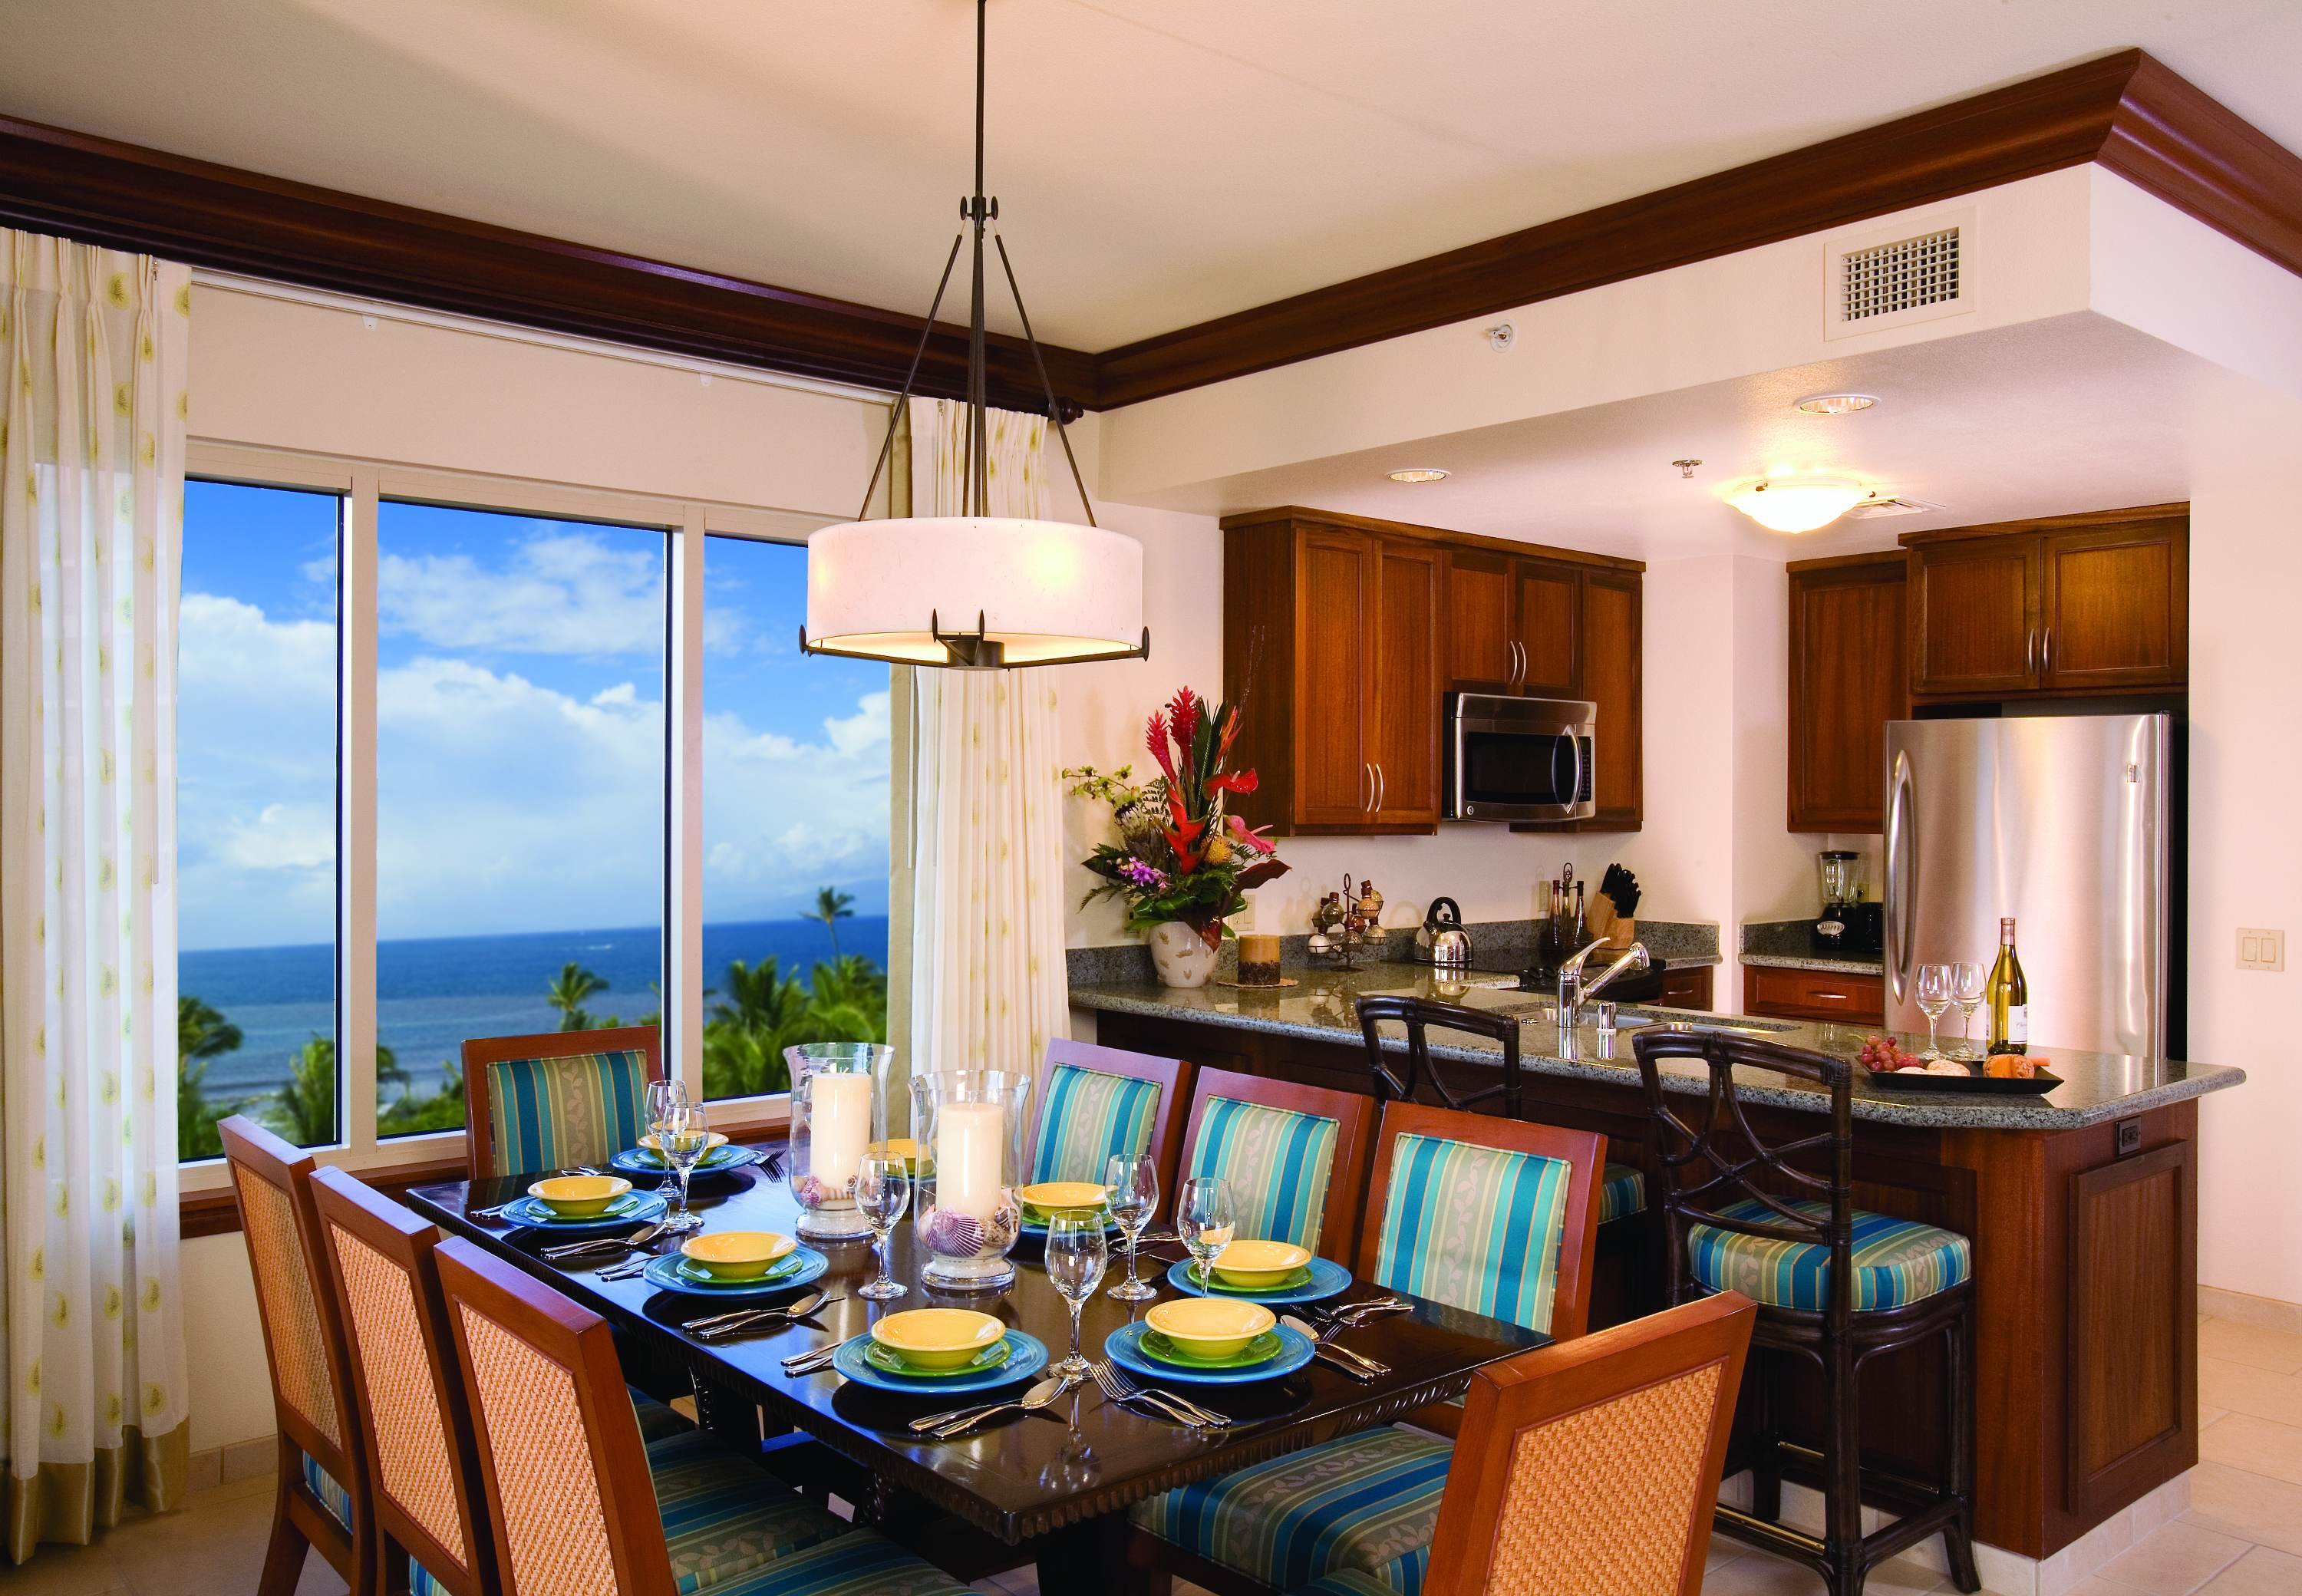 maui hotels with kitchens kitchen shelves marriott 39s ocean club lahaina and napili towers